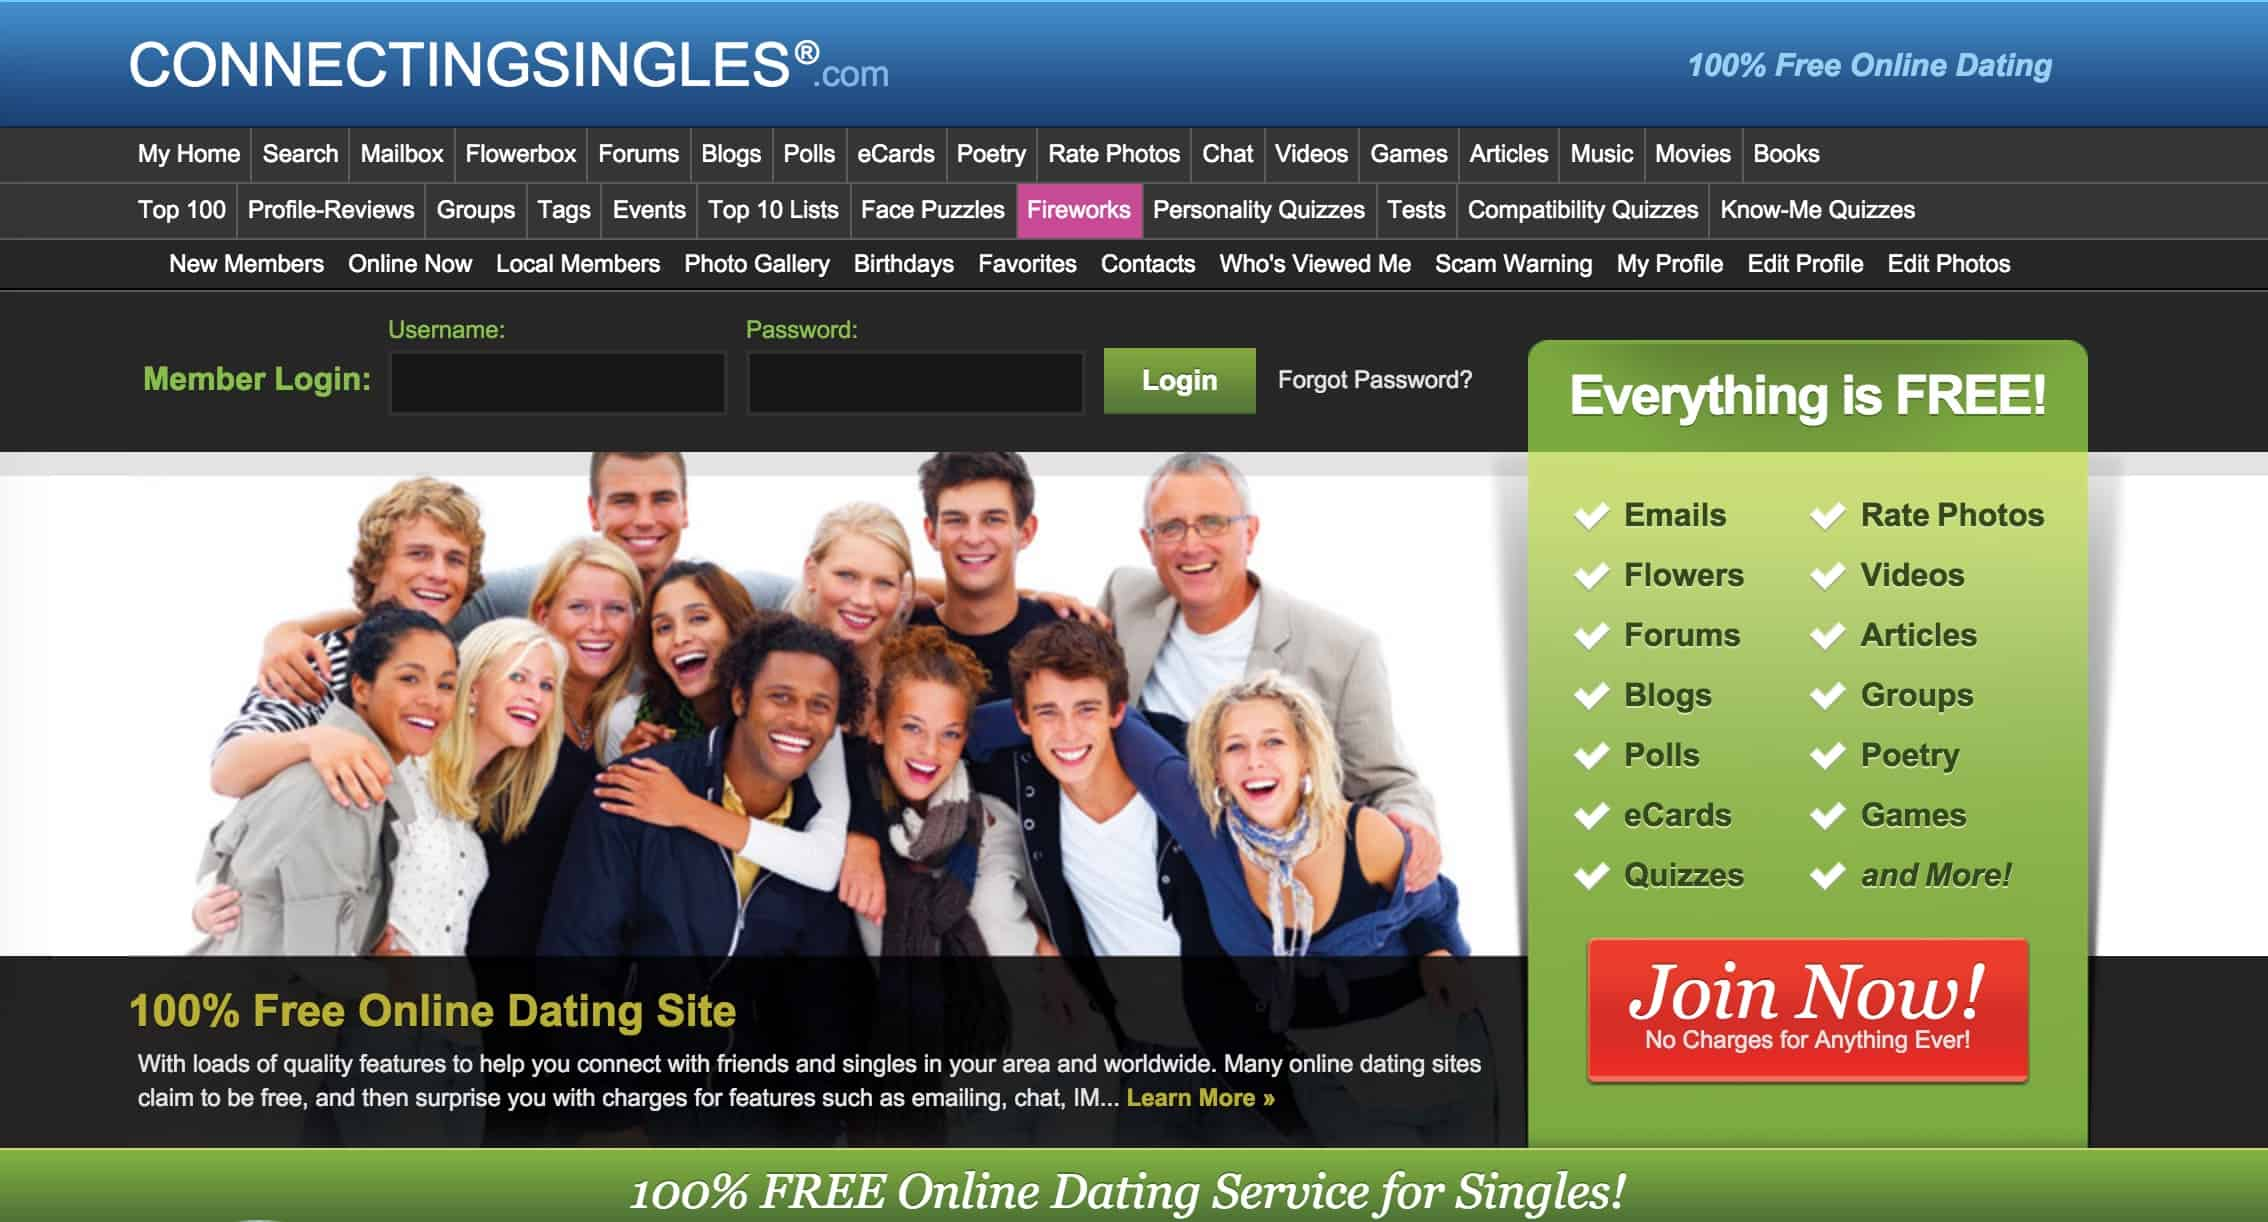 100% free online dating in taiping Mingle2 at singles chico for dating online free 100% site dating free best chico's com speed dating in taiping malaysia texting guidelines and dating etiquette.